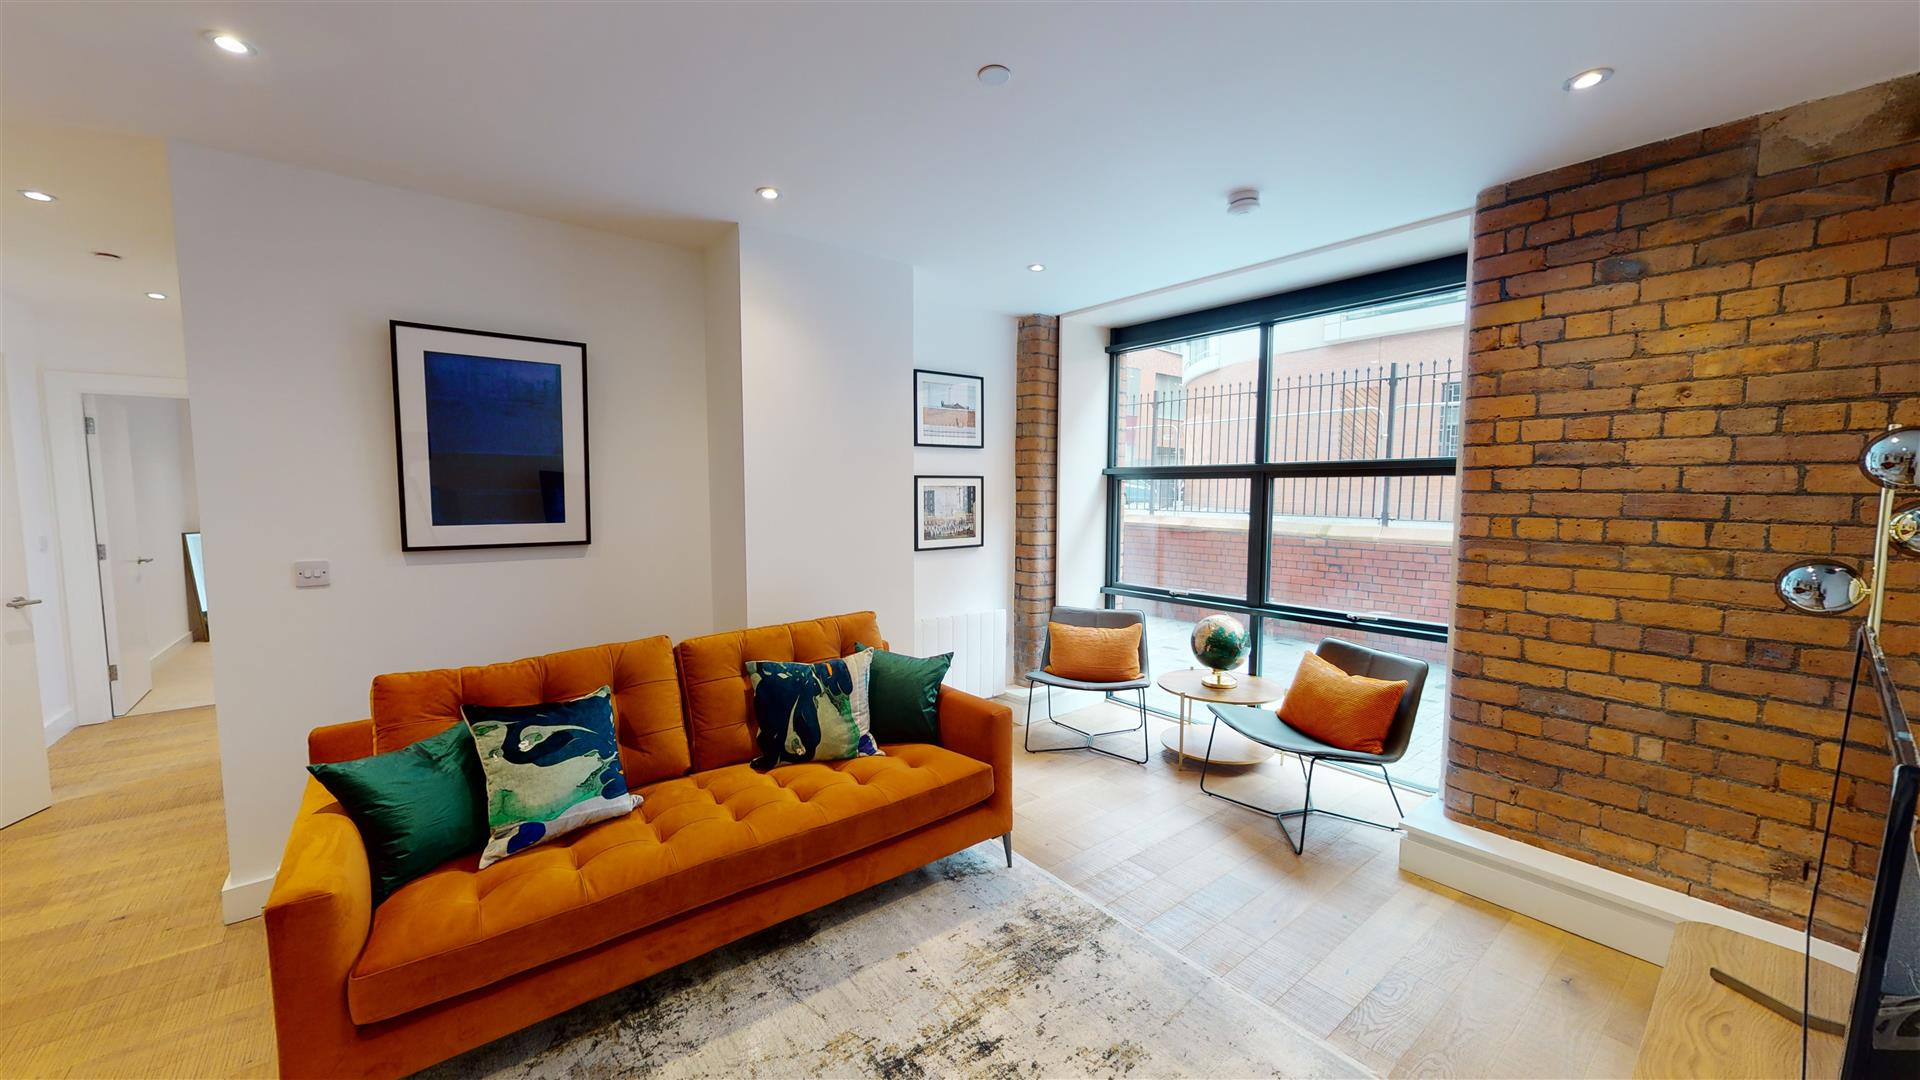 New-Little-Mill-2-Bed-Apartment-Manchester-Lou bes